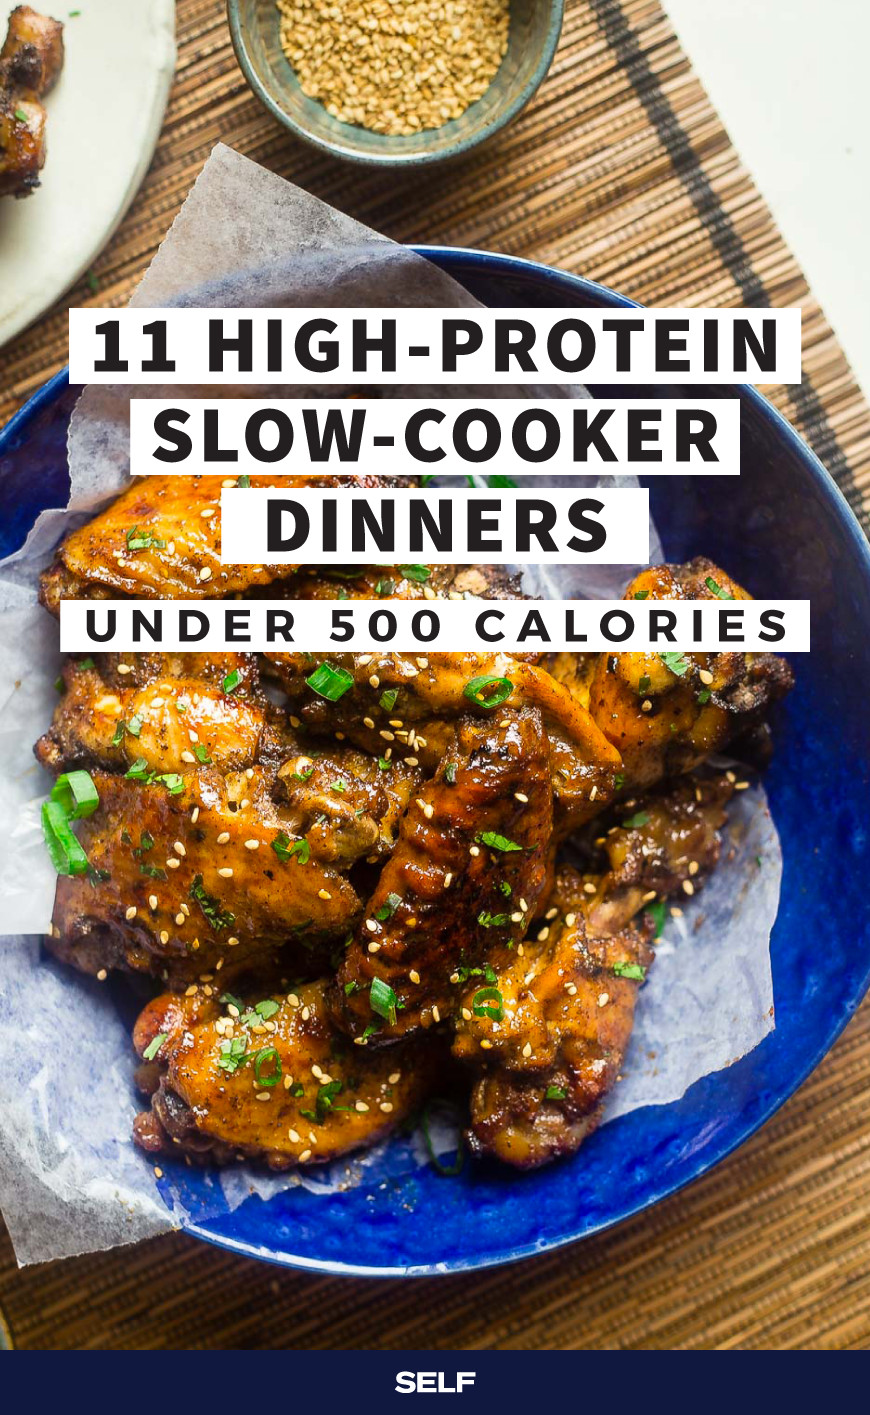 Low Fat High Protein Recipes  11 High Protein Slow Cooker Dinners Under 500 Calories